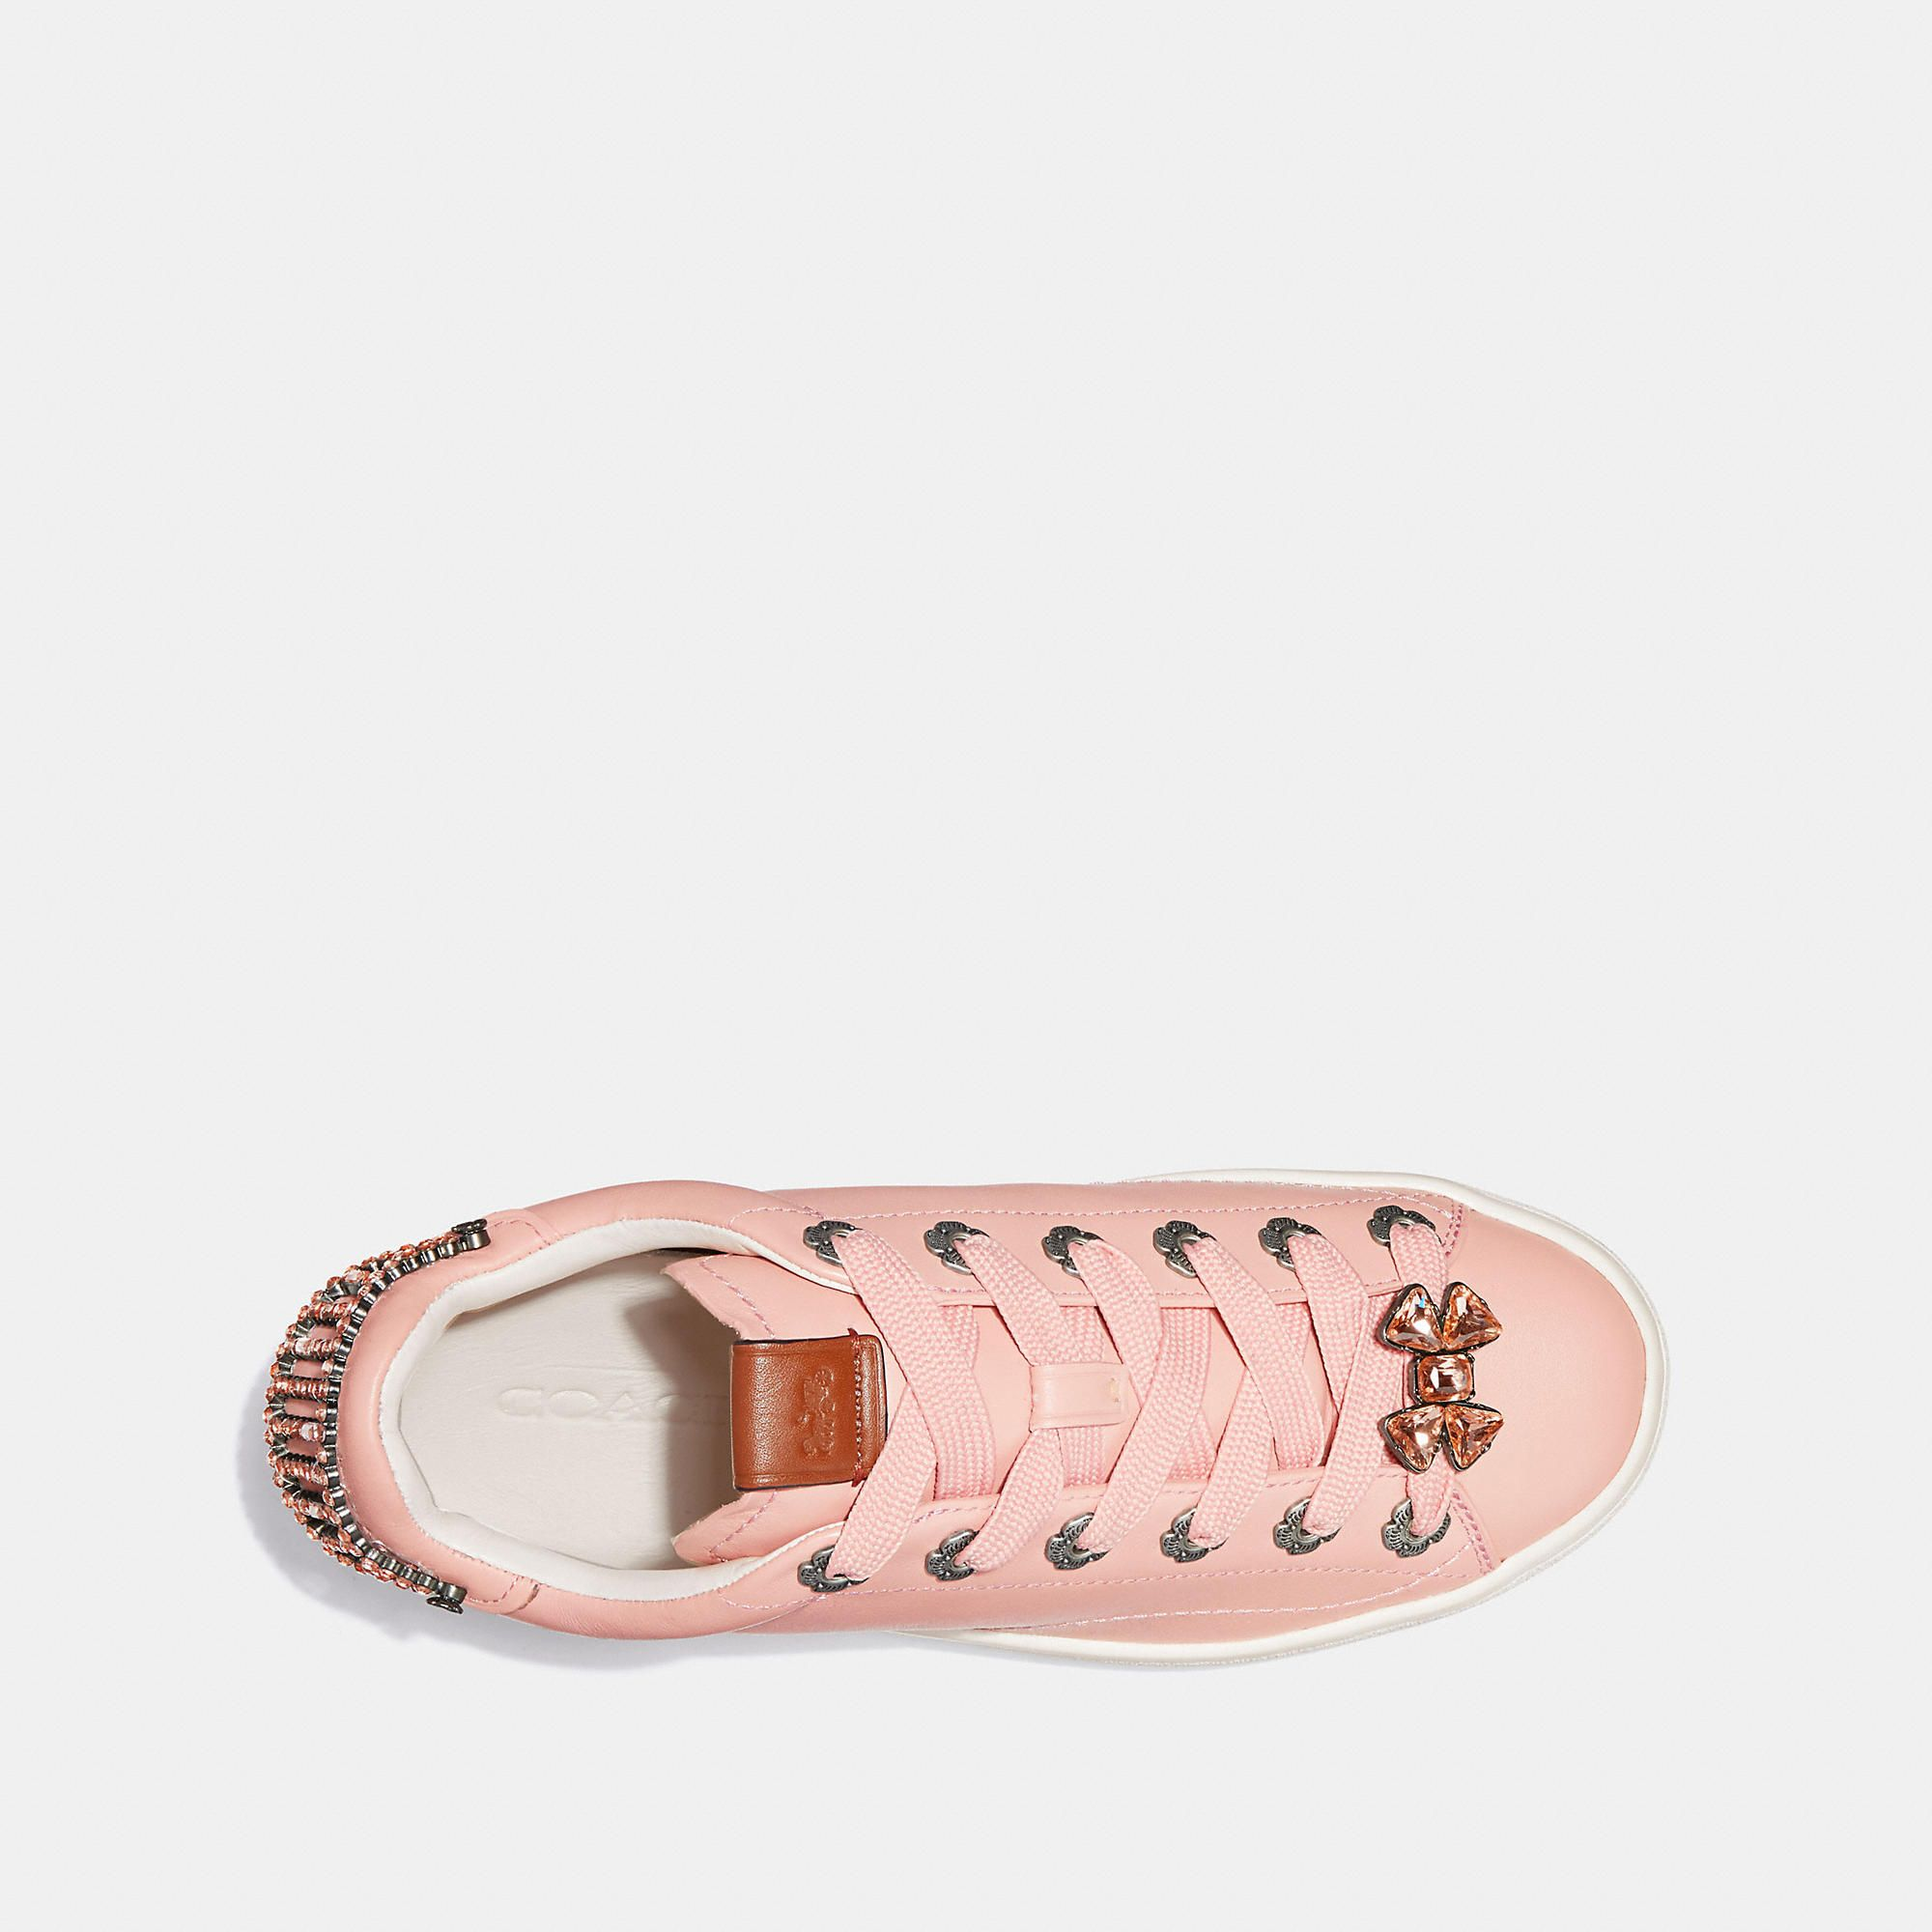 af7741132d4a COACH C101 With Tea Rose Eyelets And Bow - Women s Size 5.5 Tennis Shoes